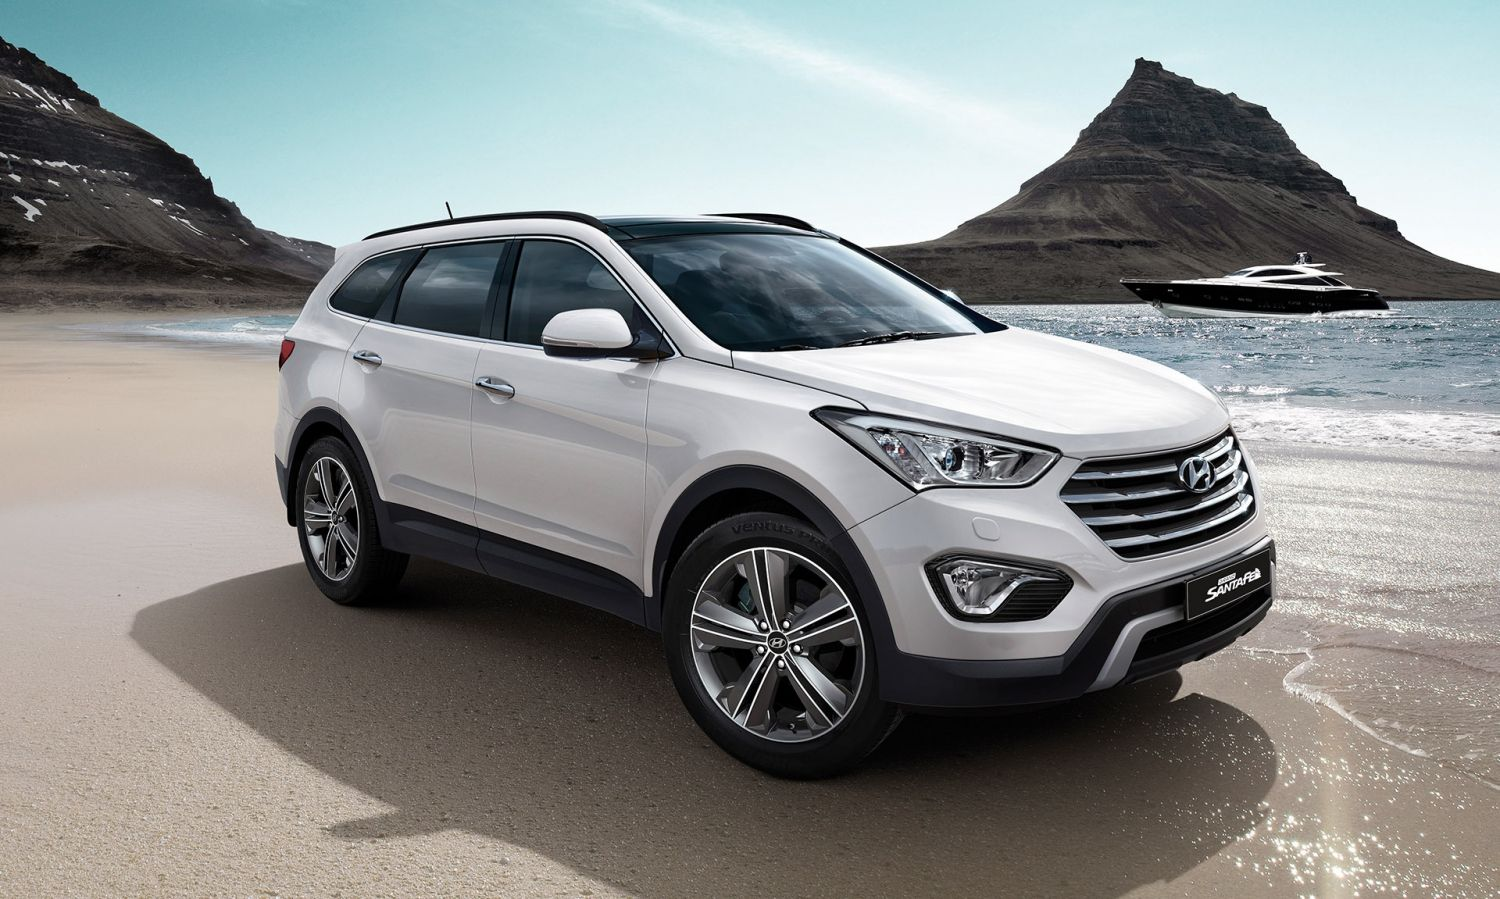 Pin by Alicia Richhart on It's possible Hyundai suv